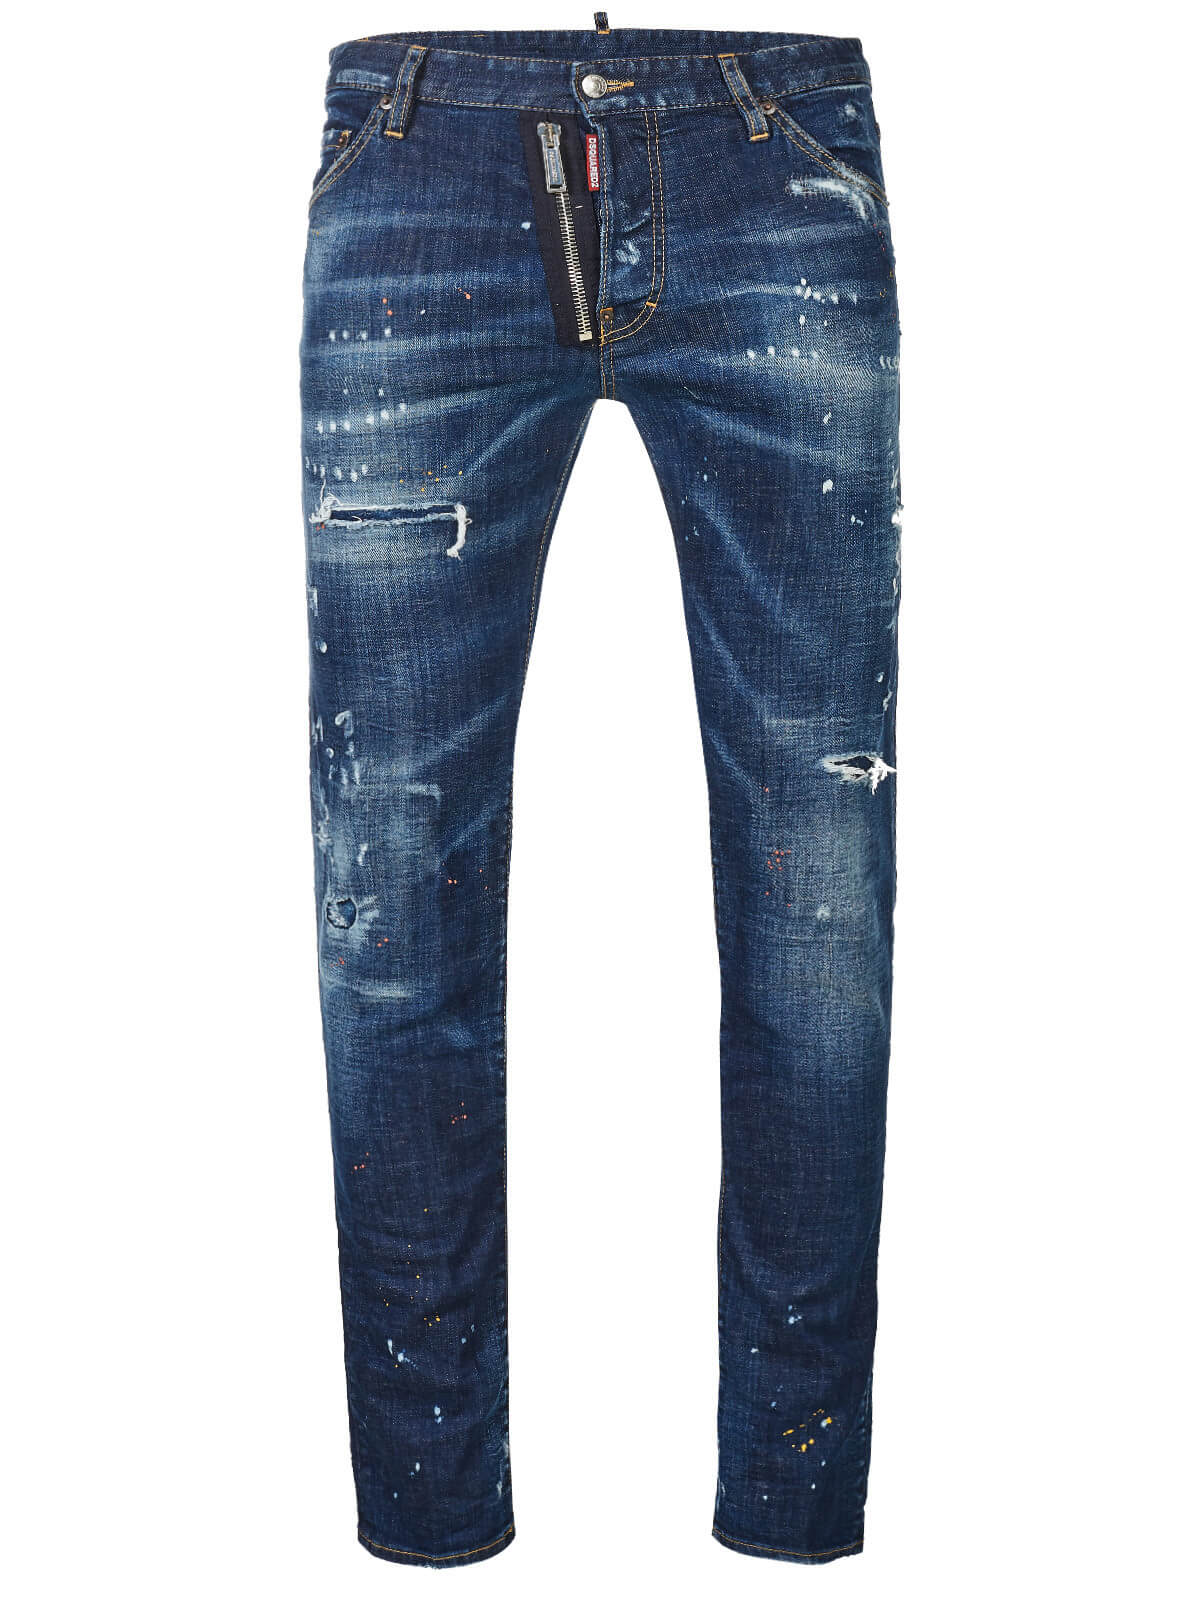 Dsquared Cool Guy Jeans by Dsquared